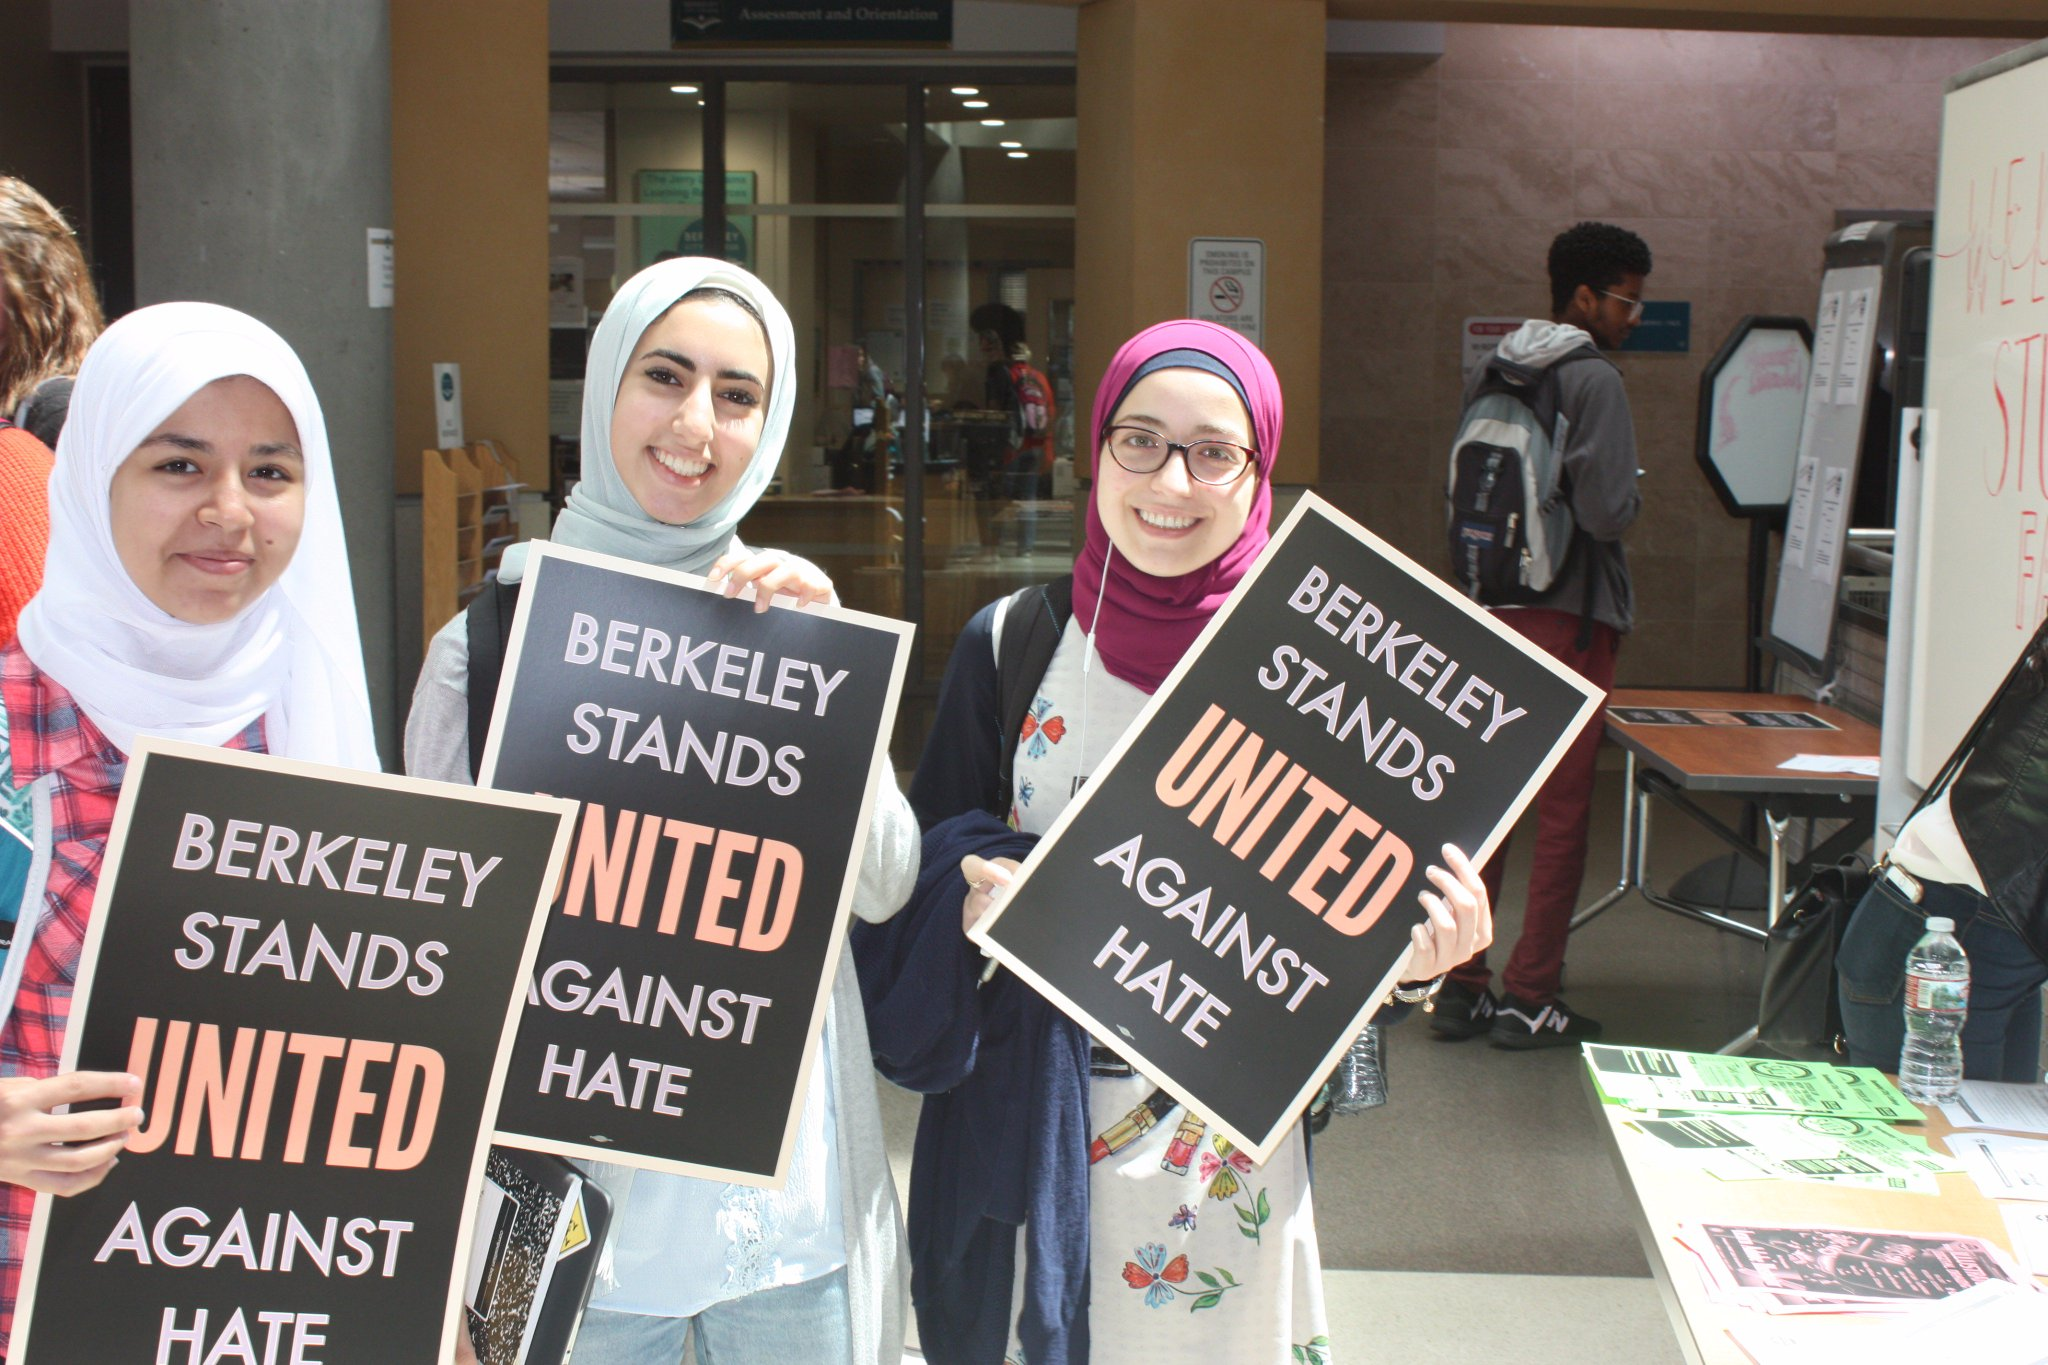 Three Muslim women holding 'Berkeley Stands United Against Hate' signs.